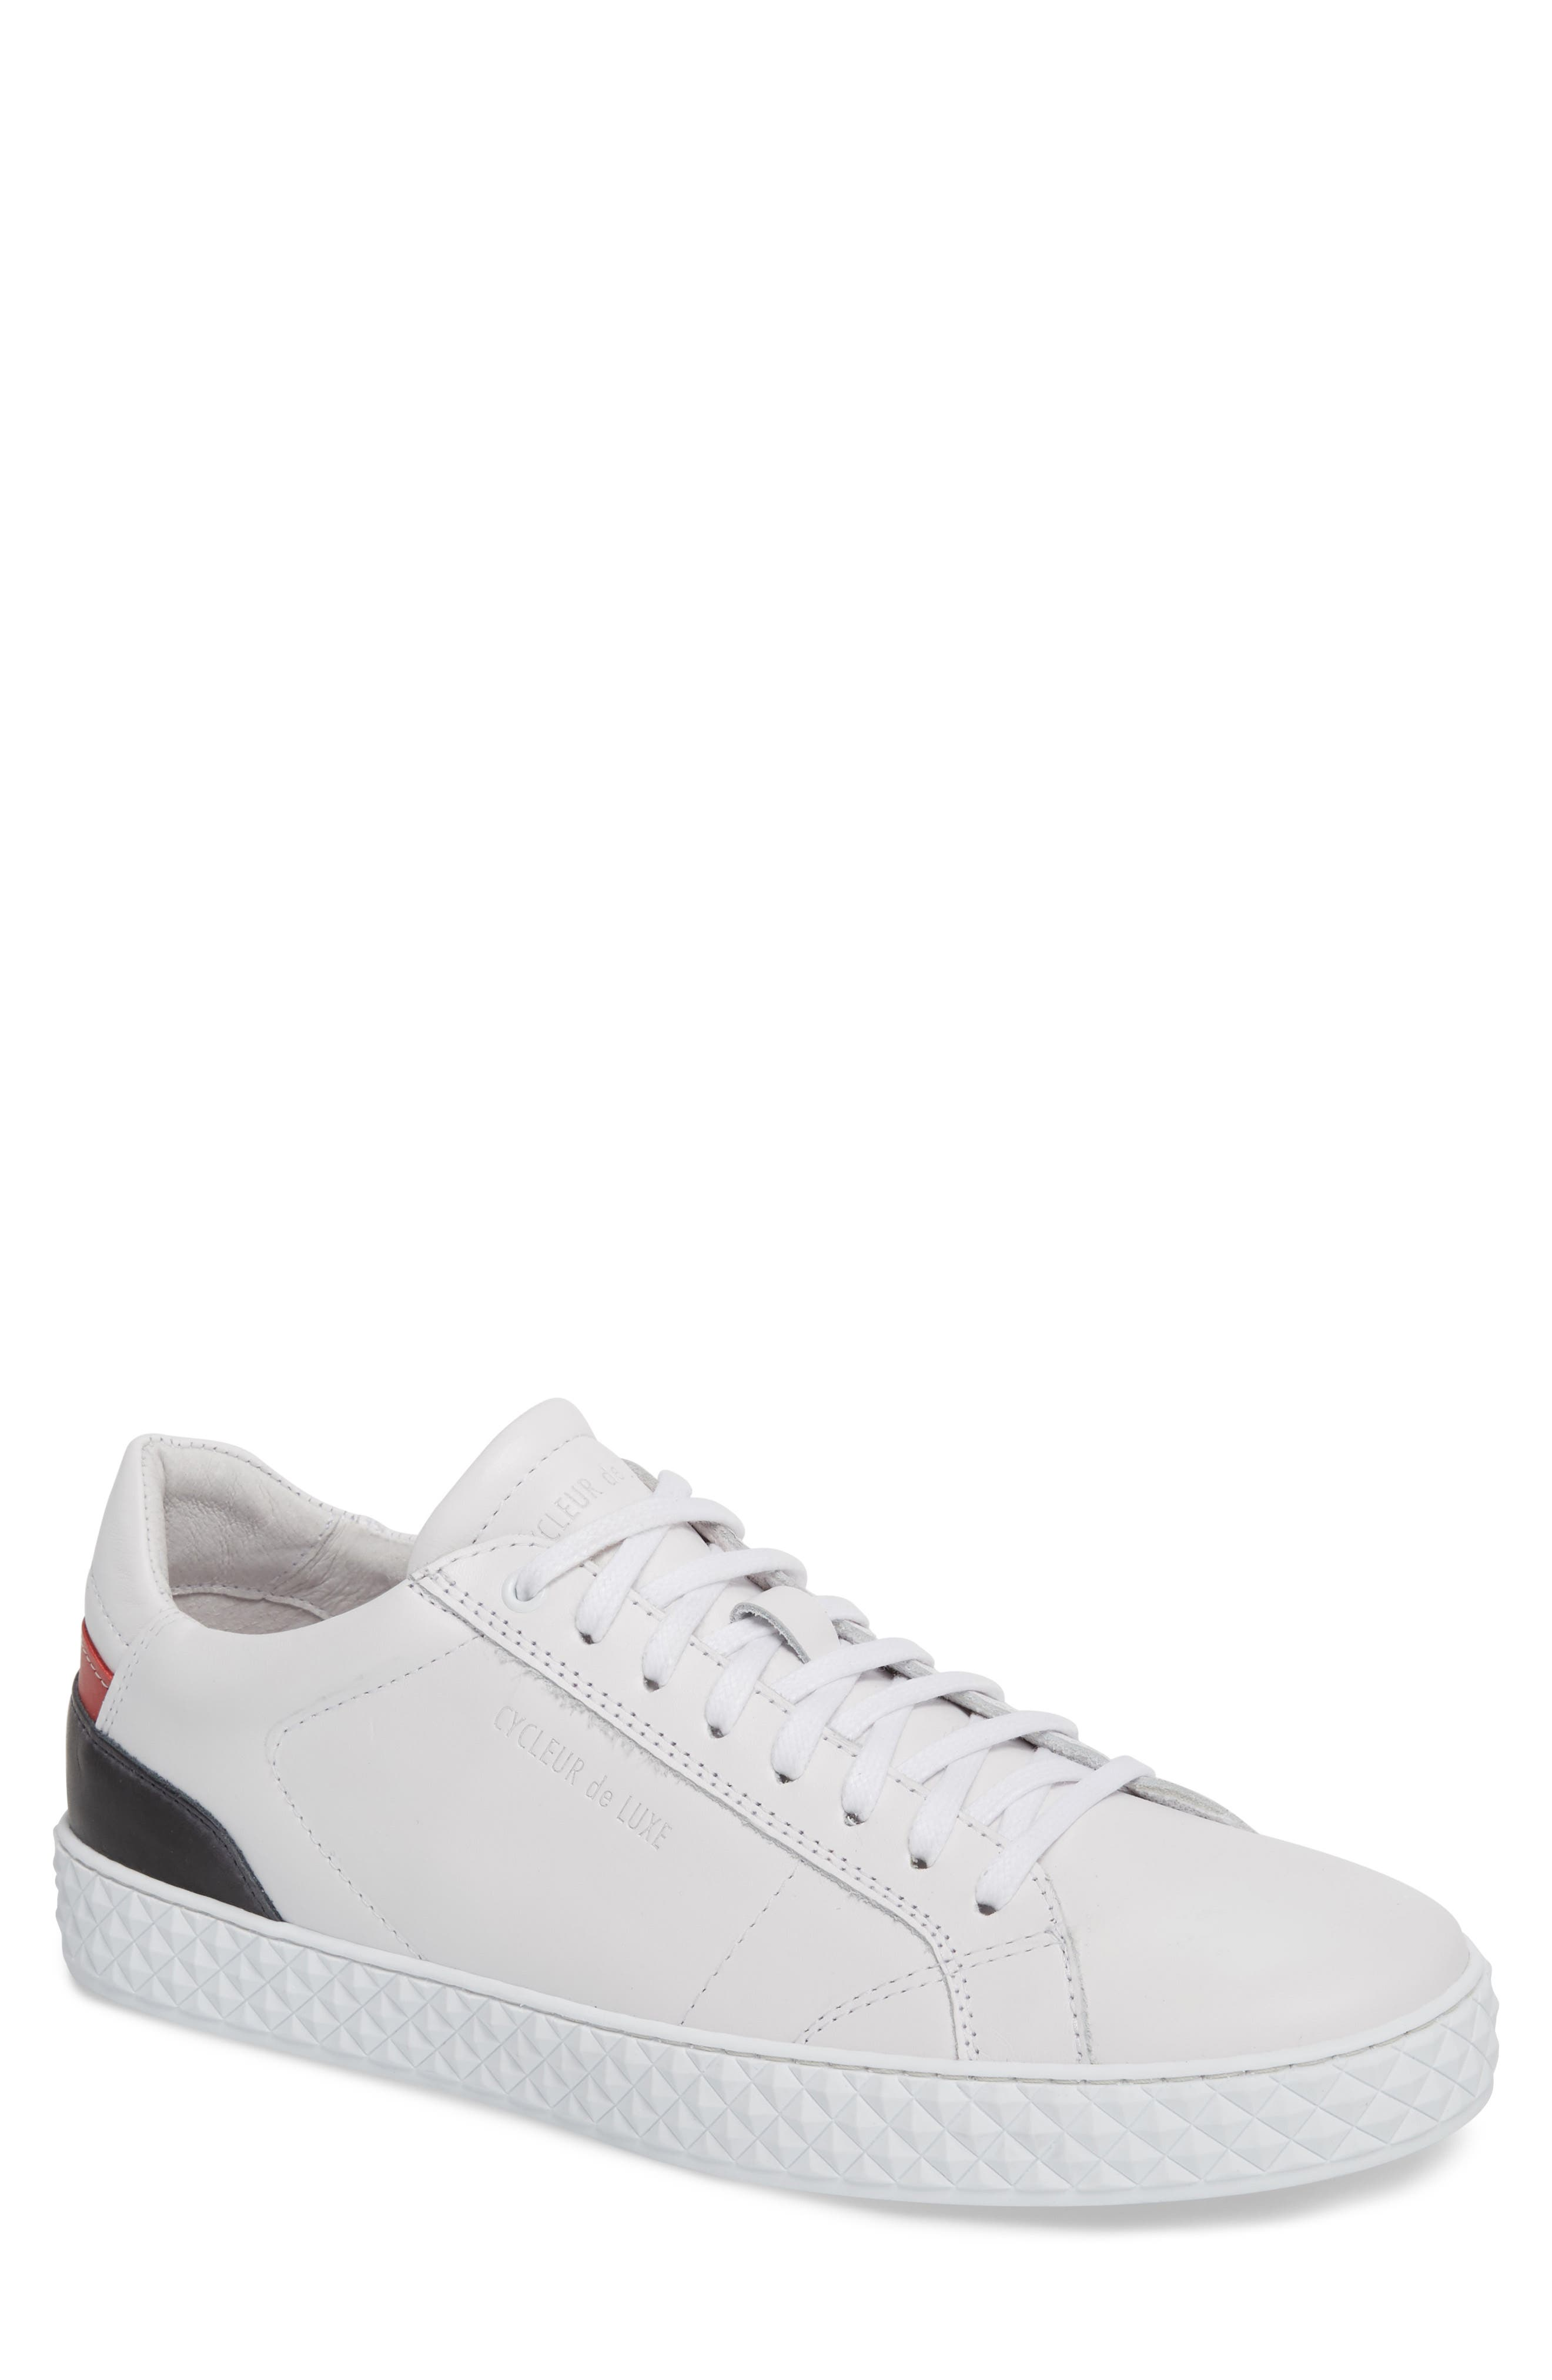 Bratislava Low Top Sneaker,                         Main,                         color, OPTIC WHITE/ RED/ NAVY LEATHER